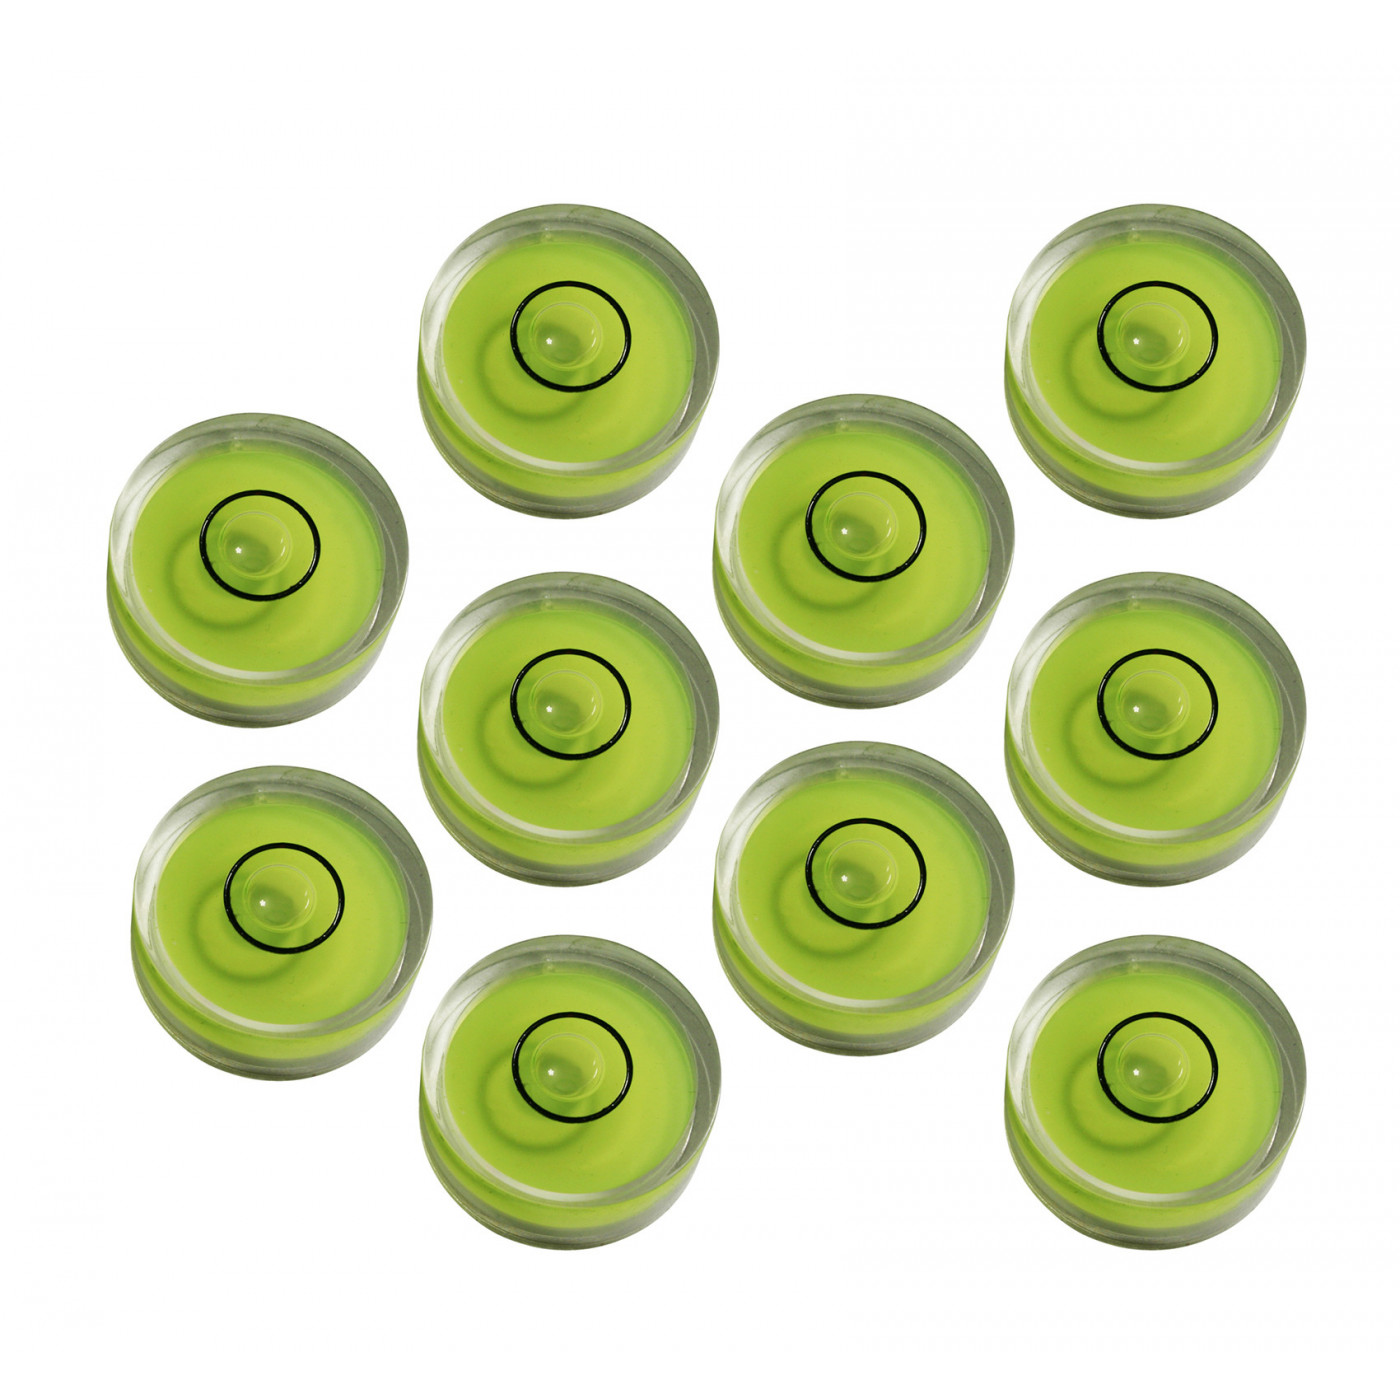 Set of 10 small round bubble levels size 6 (15x6 mm)  - 1